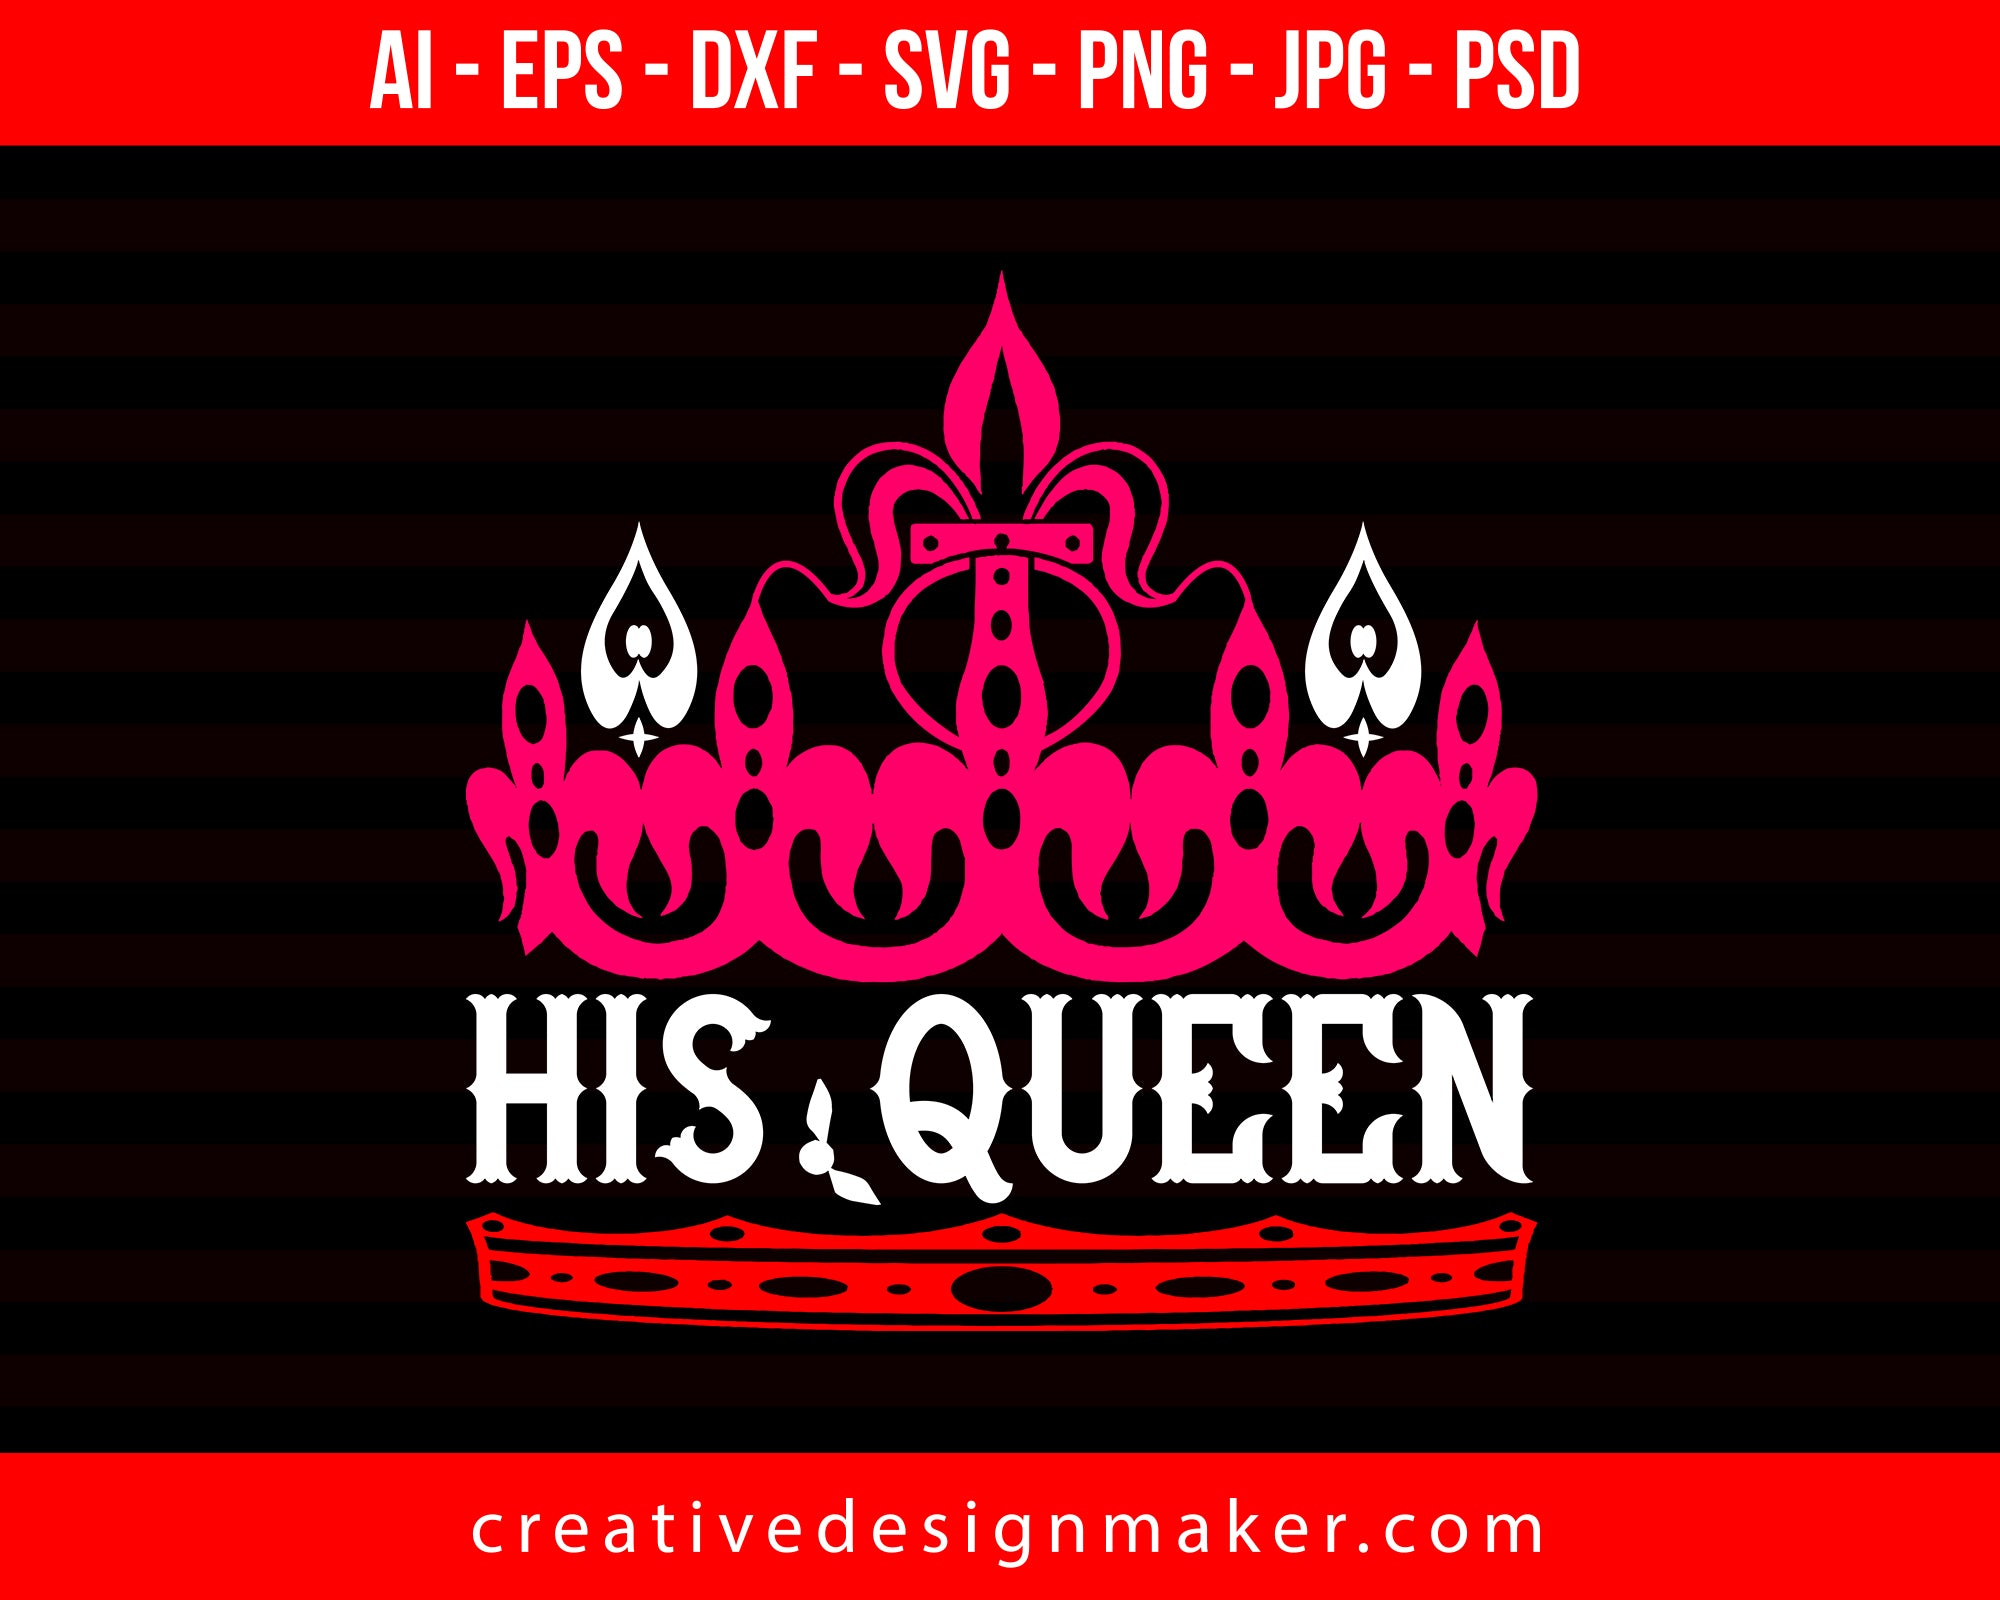 His Queen Couple Print Ready Editable T-Shirt SVG Design!